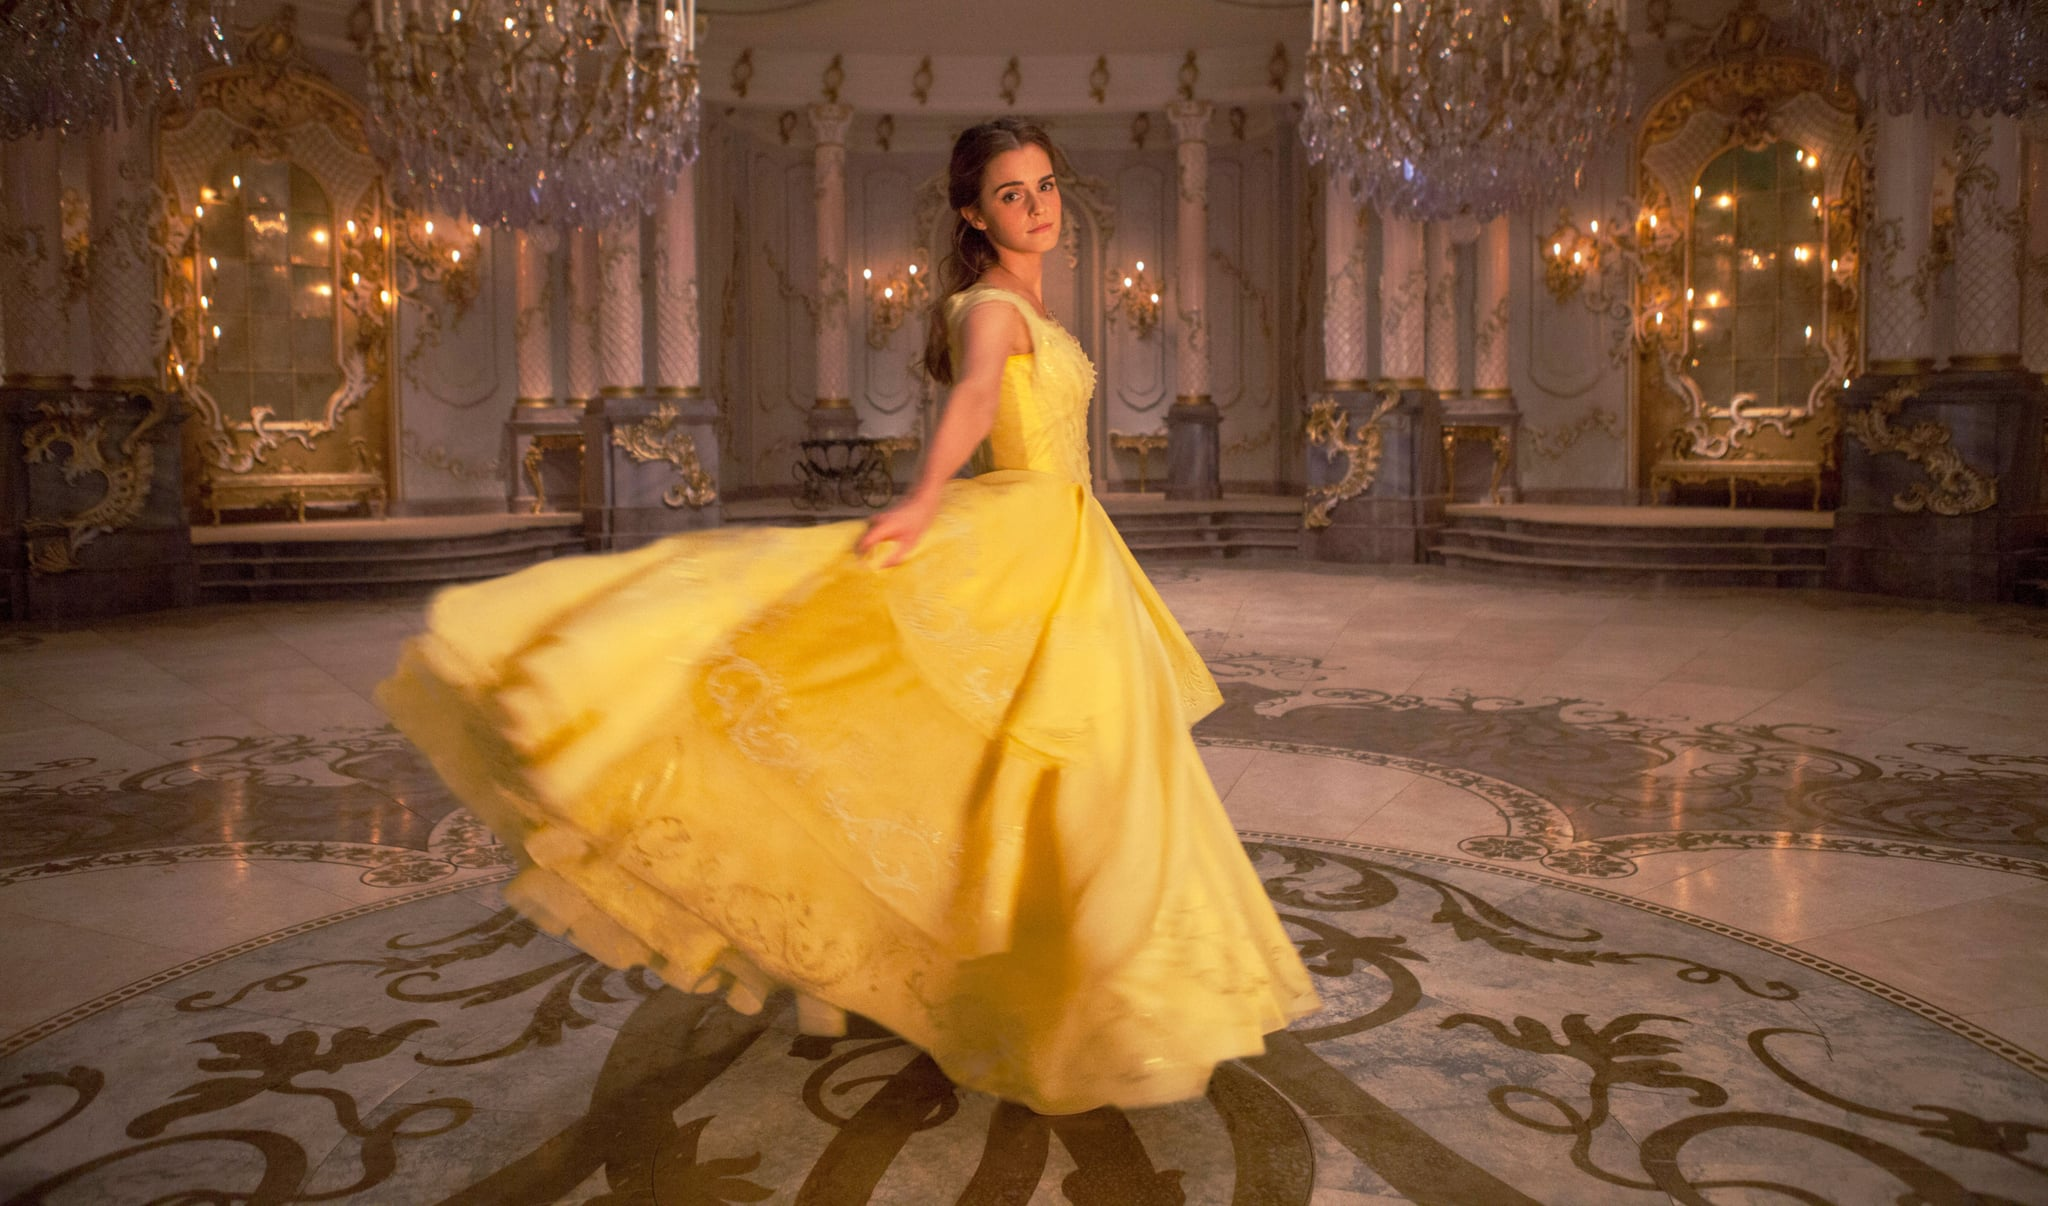 Emma Watson on singing in 'Beauty and the Beast'